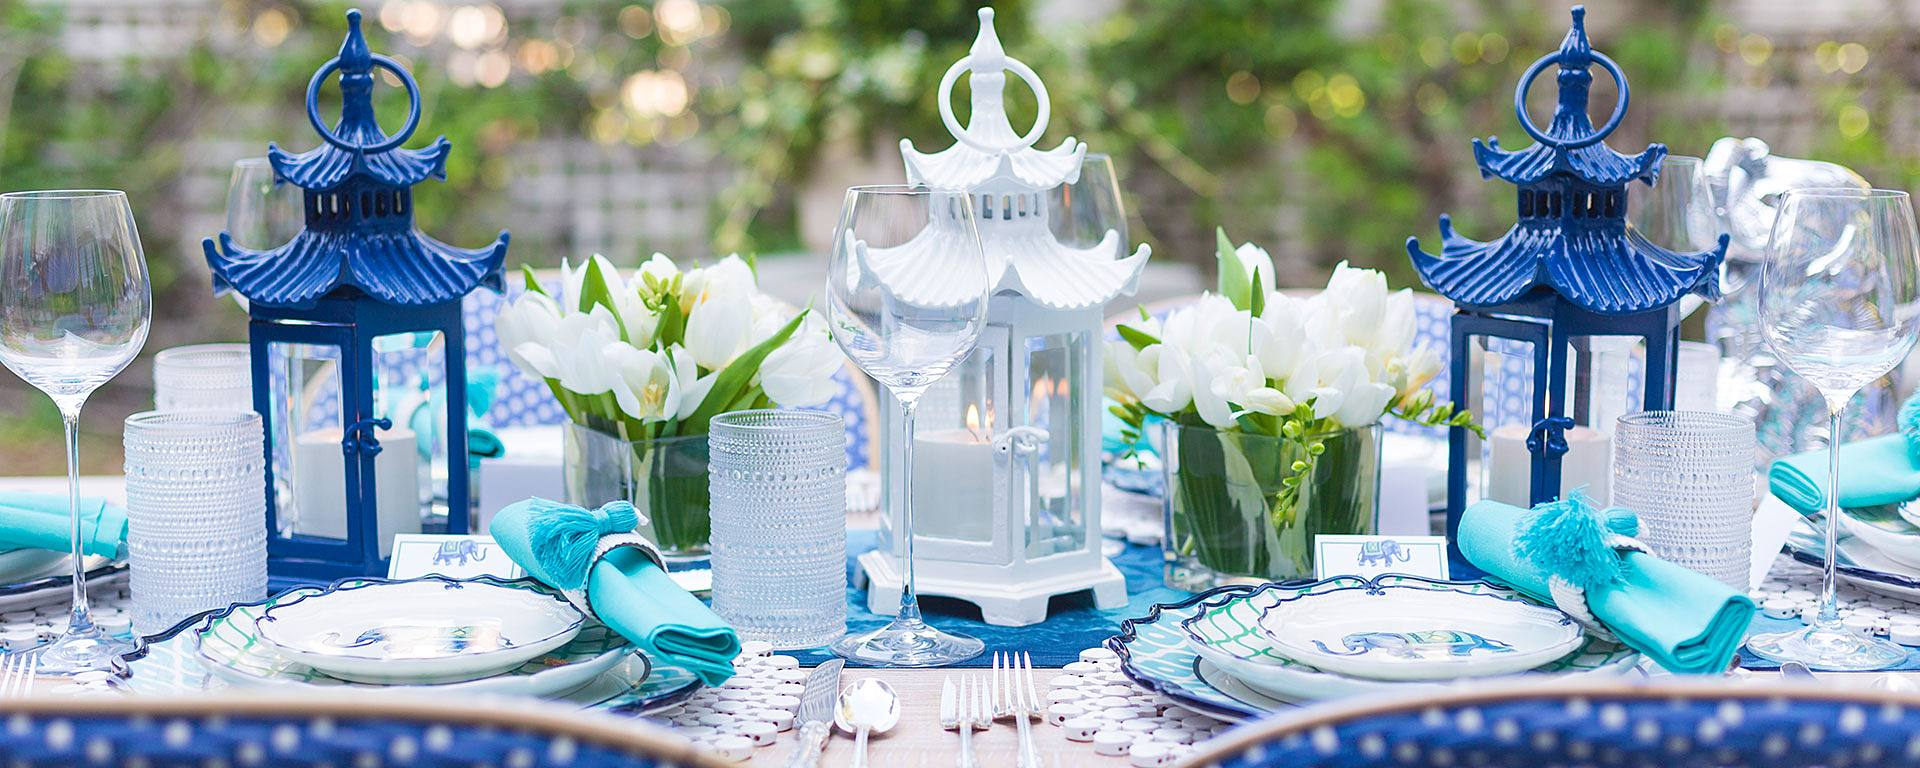 SECRETS OF A PARTY PLANNER: THE LAST-MINUTE DINNER PARTY WITH ...